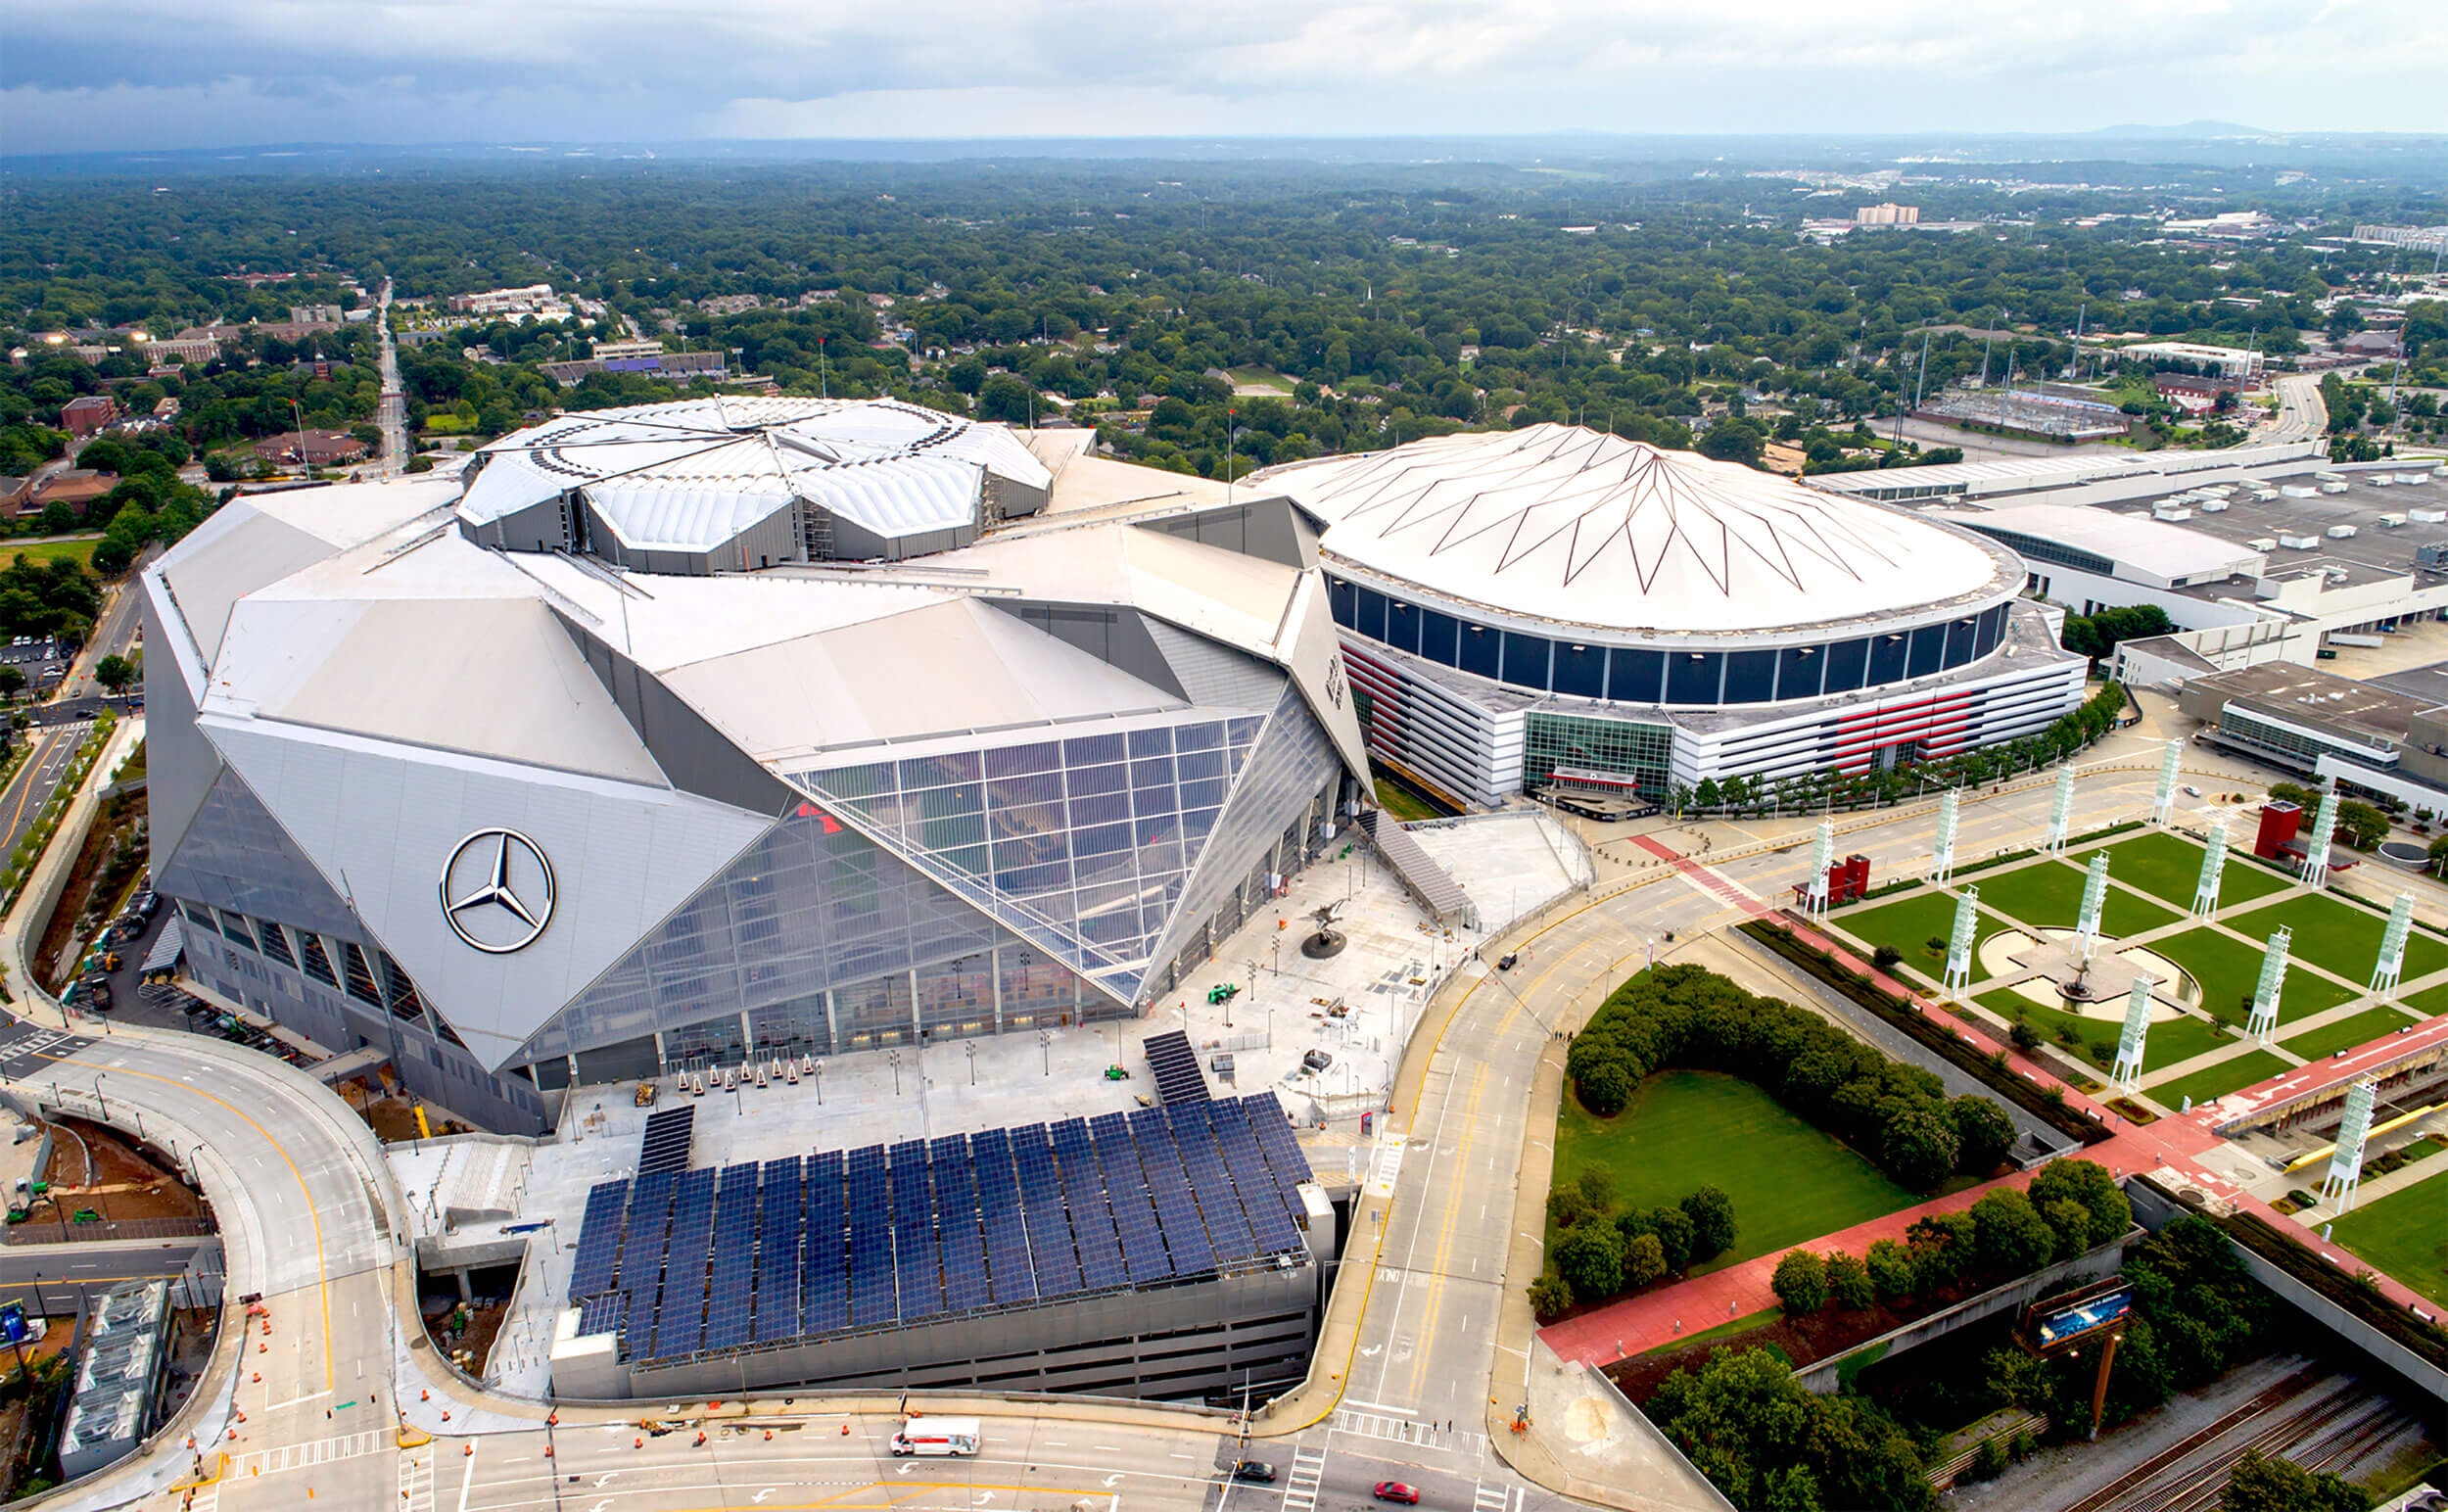 aerial view of mercedes benz showing solar canopy